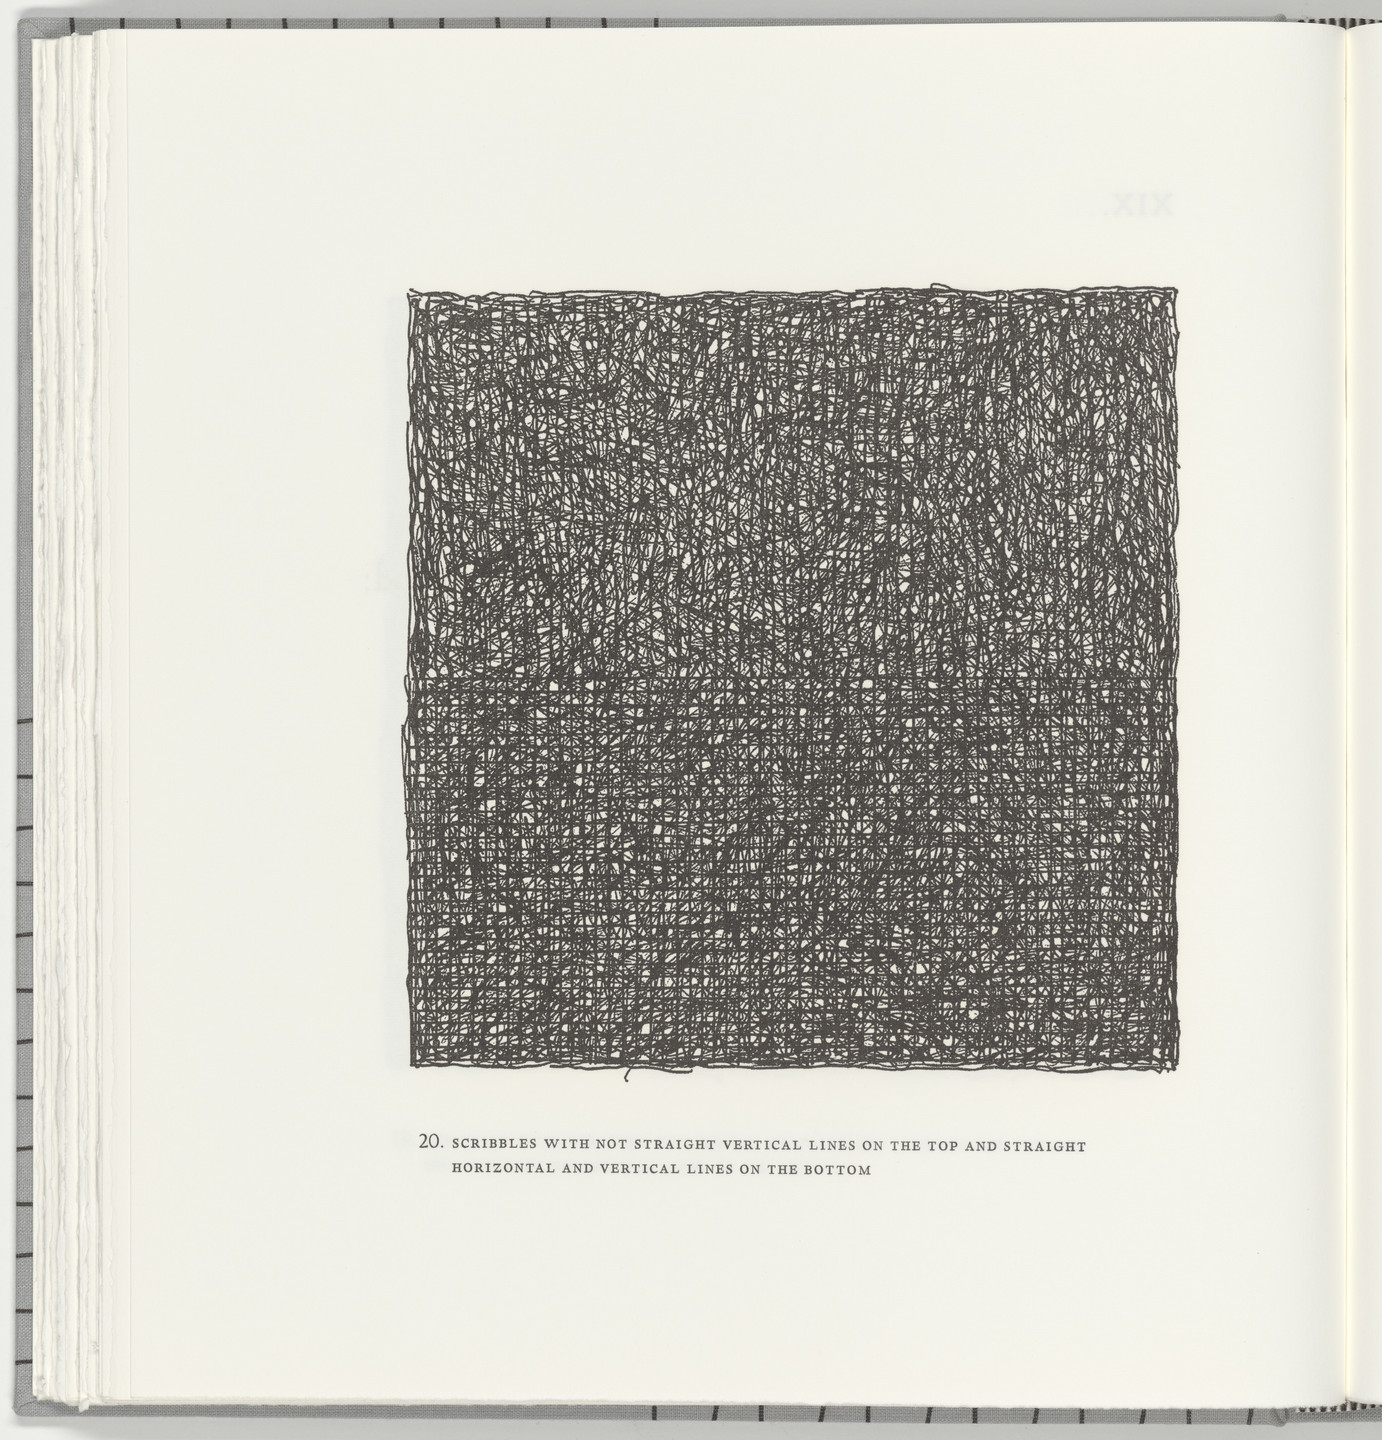 Sol LeWitt. Scribbles with Not Straight Vertical Lines on the Top and Straight Horizontal and Vertical Lines on the Bottom (plate 20) from Squarings. 2003